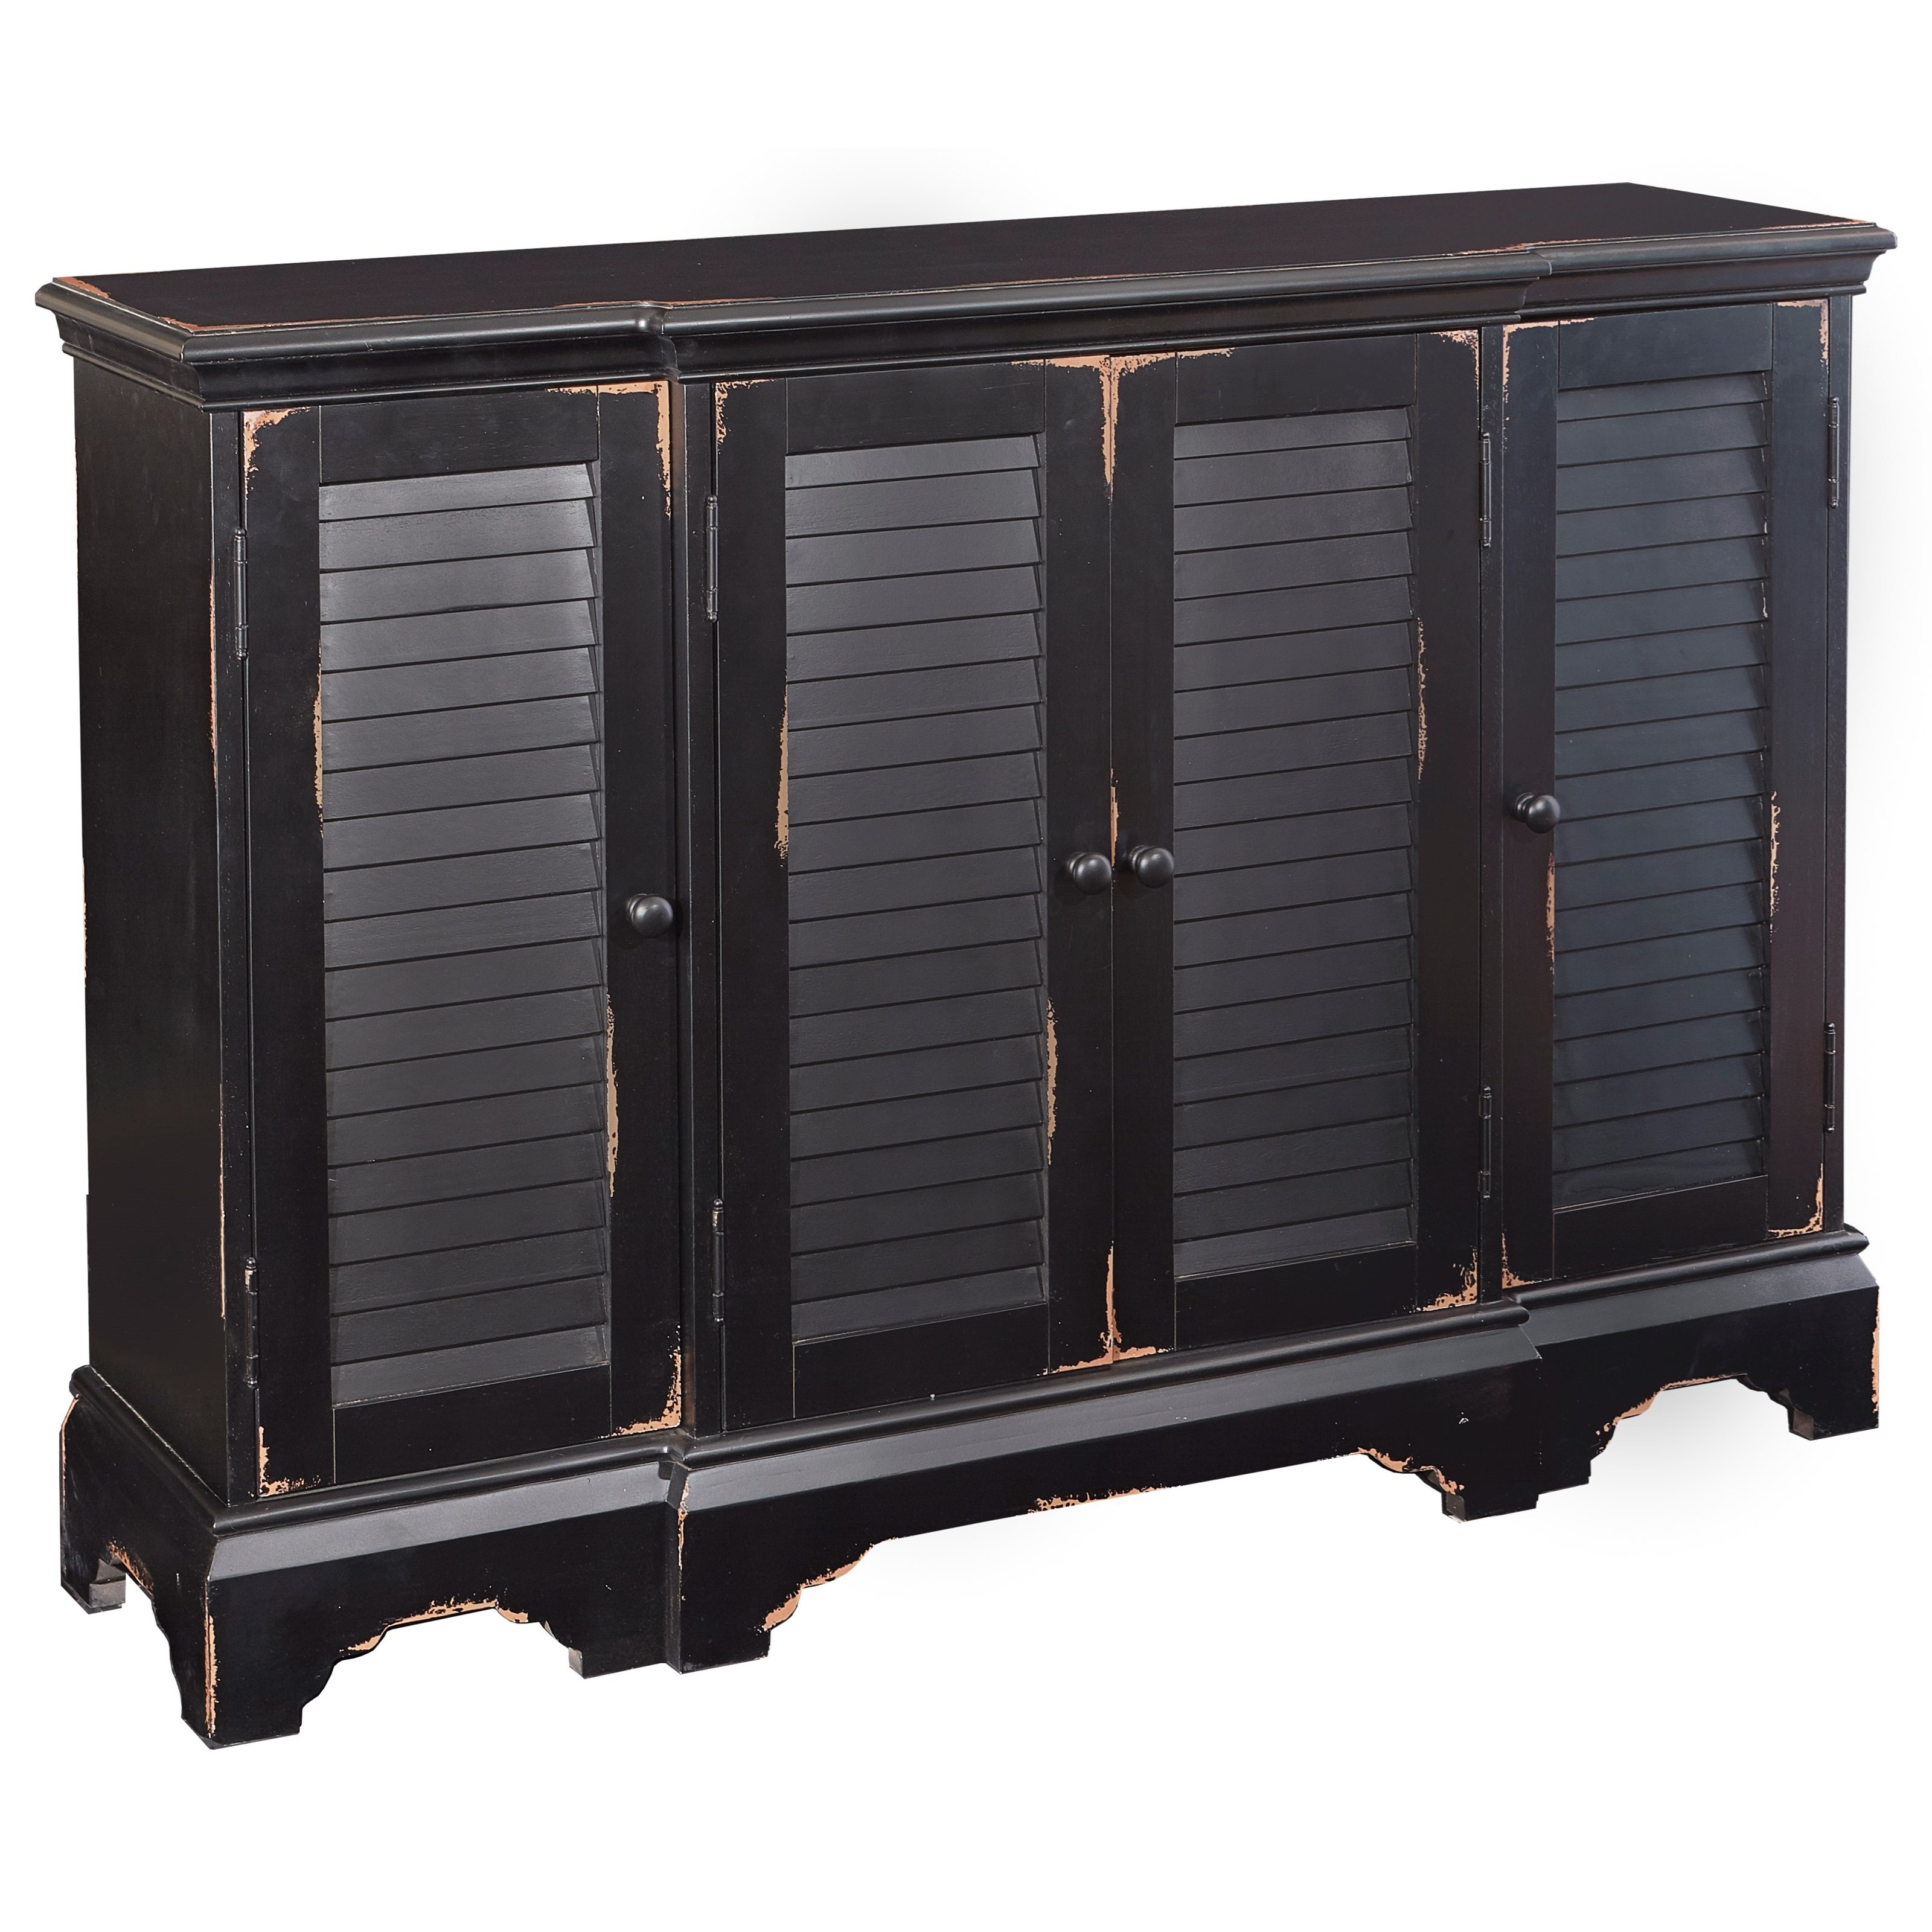 Powell Accent Furniture Savannah Shutter Console - Item Number: 16A8262B